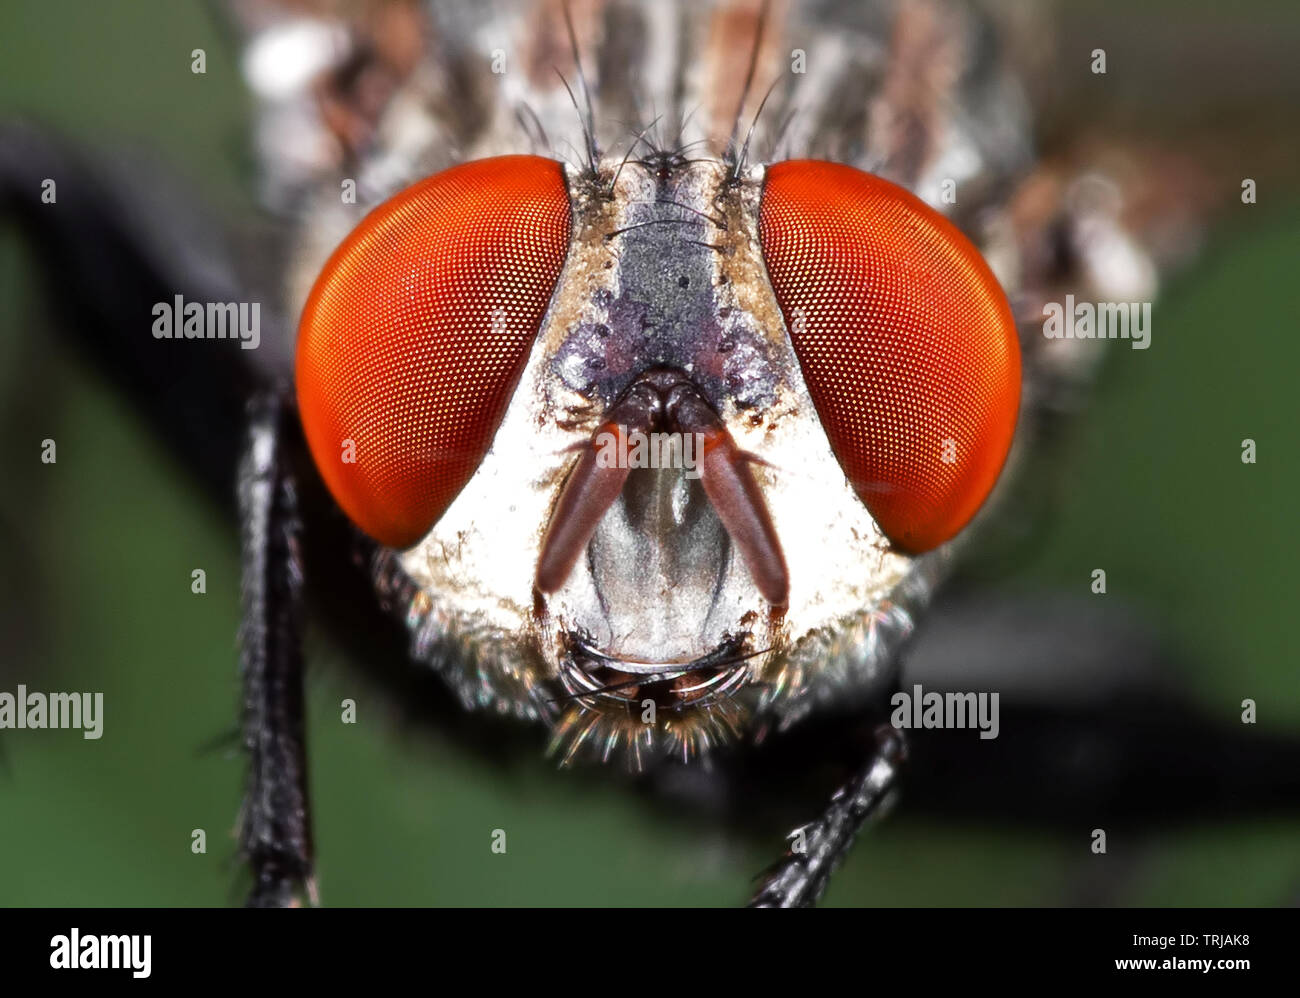 Macro Photography of Head of Housefly on Green Leaf - Stock Image